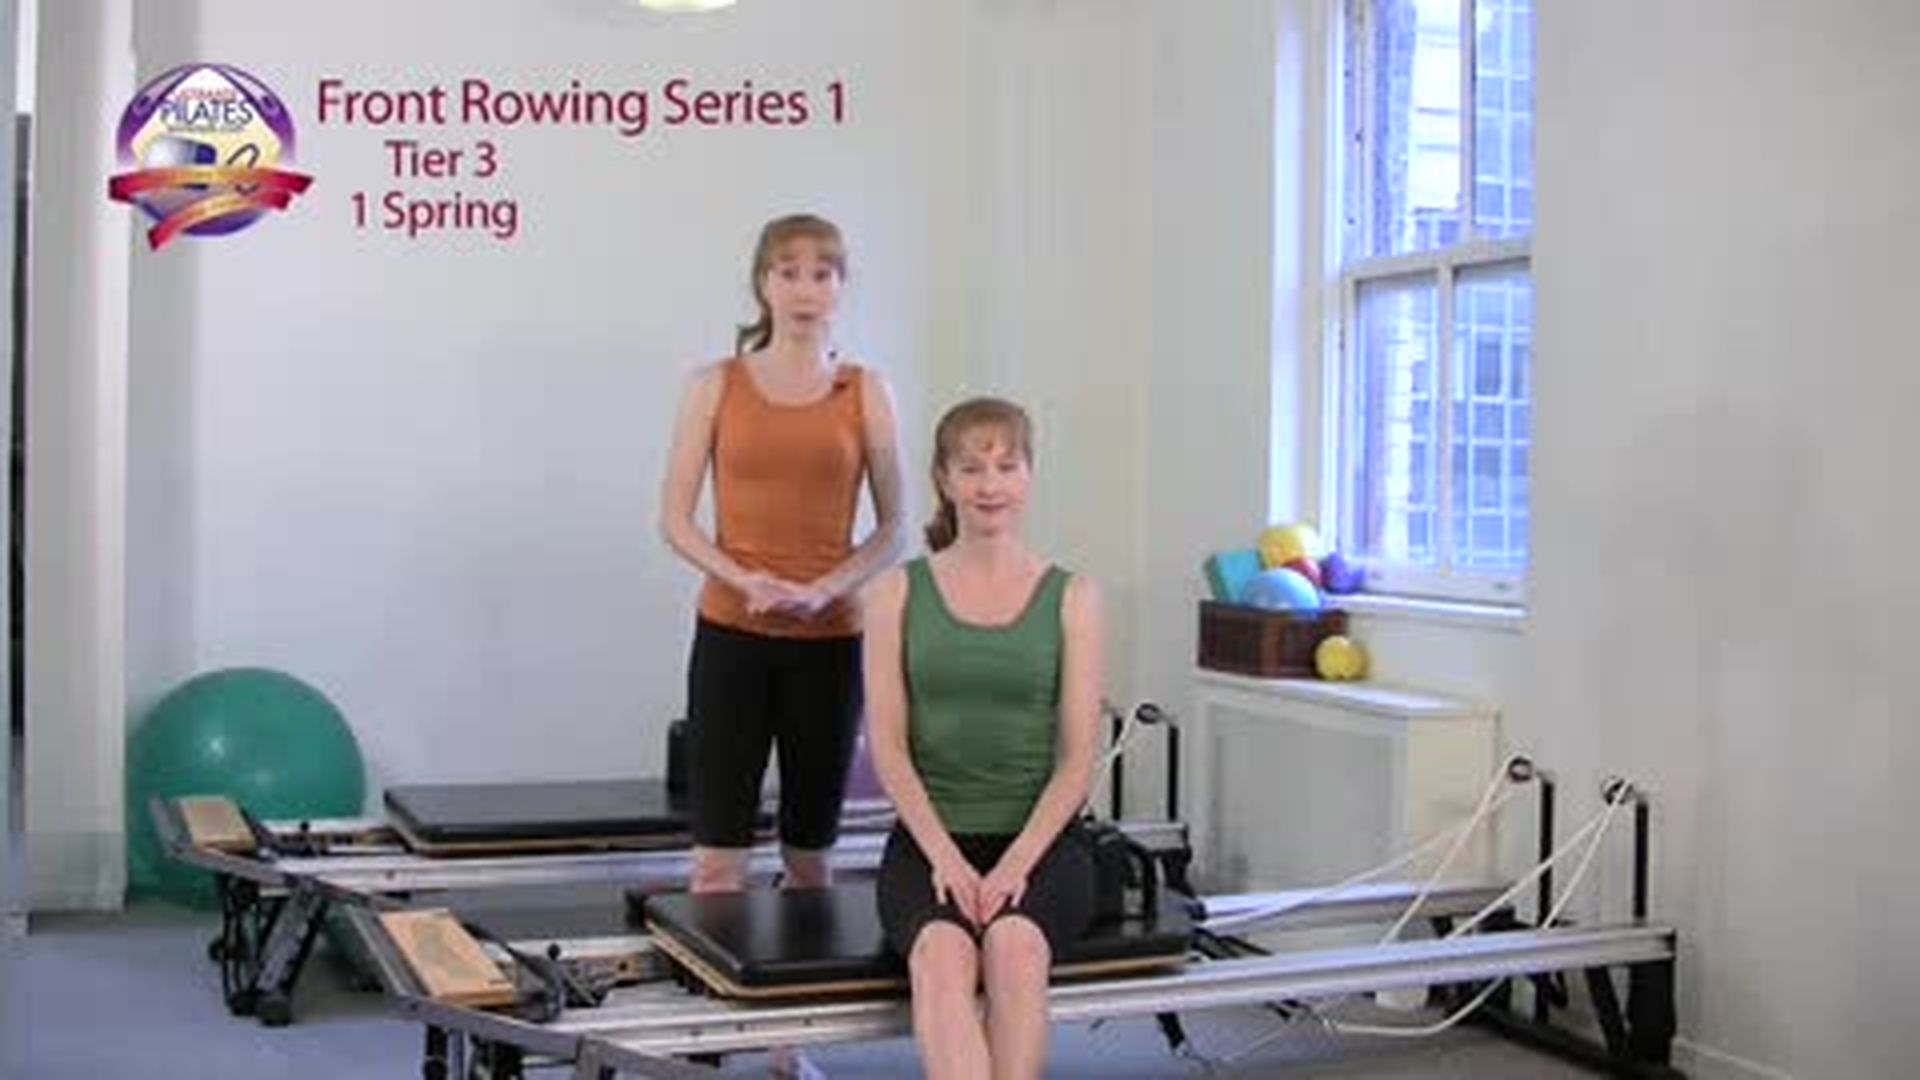 Front Rowing Series 1